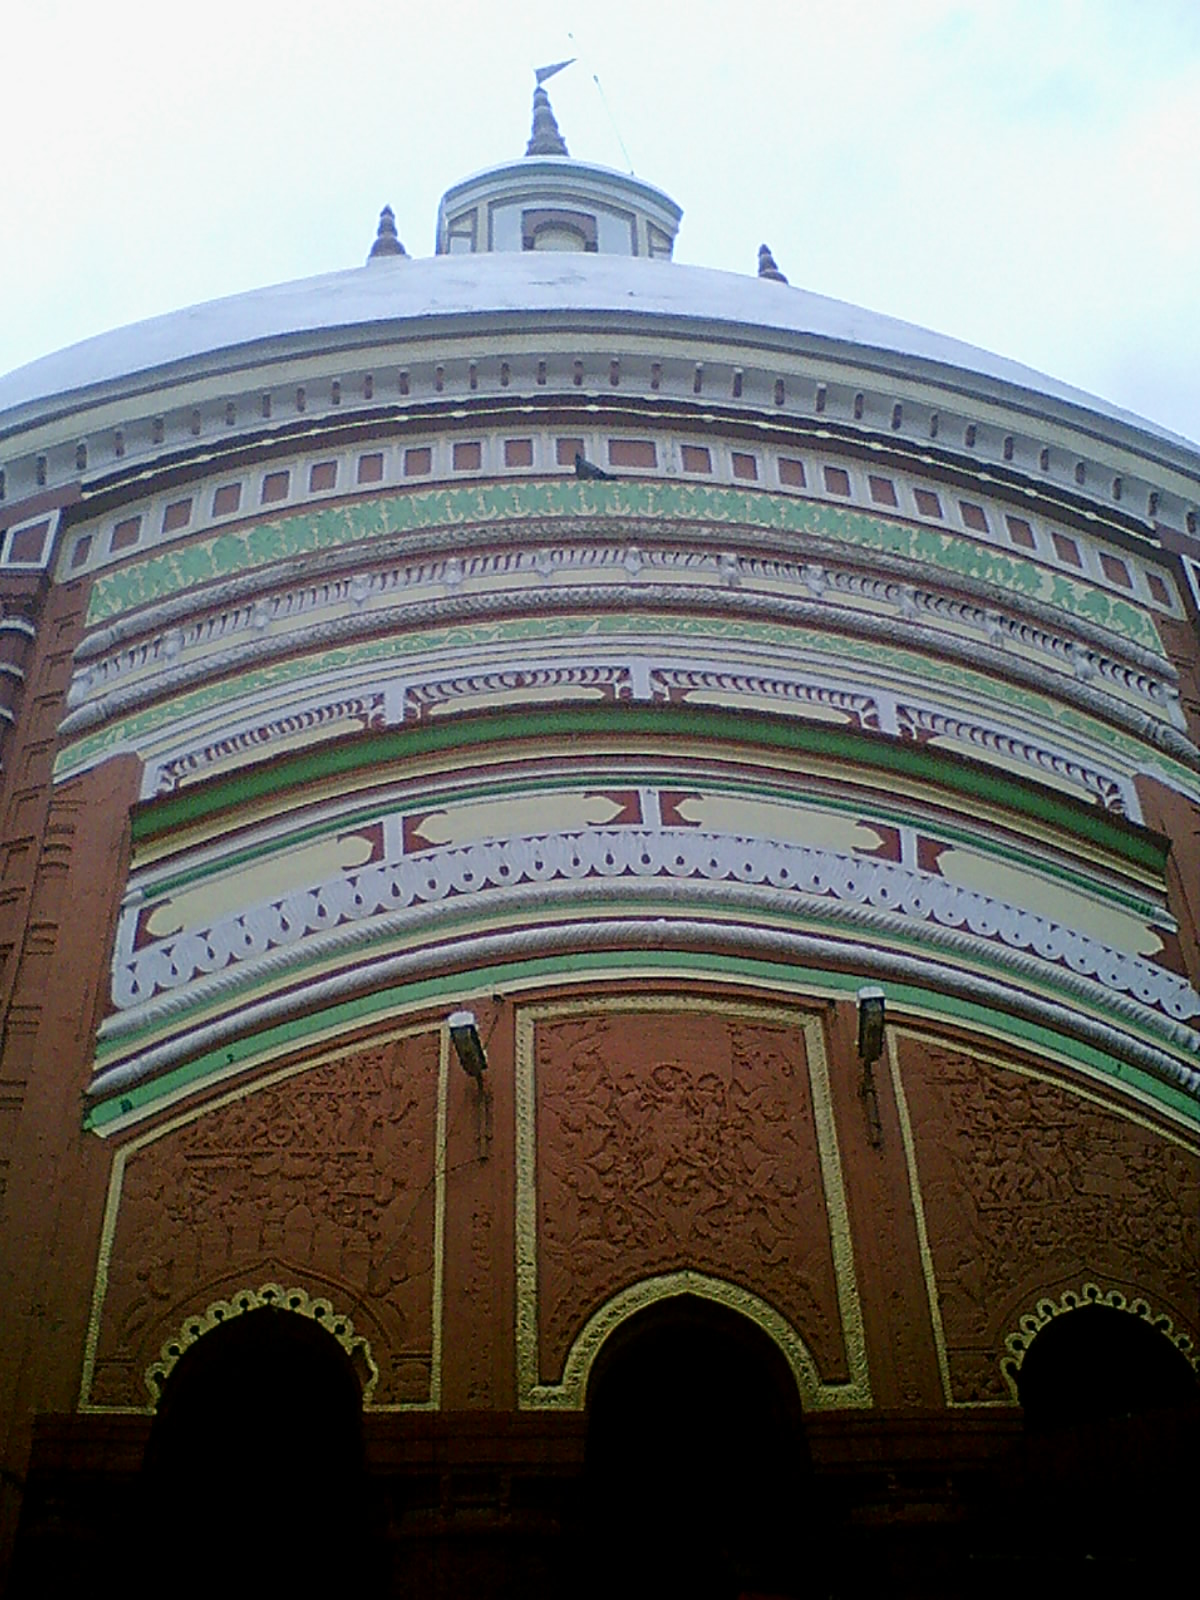 tarapith  u2013 travel guide at wikivoyage